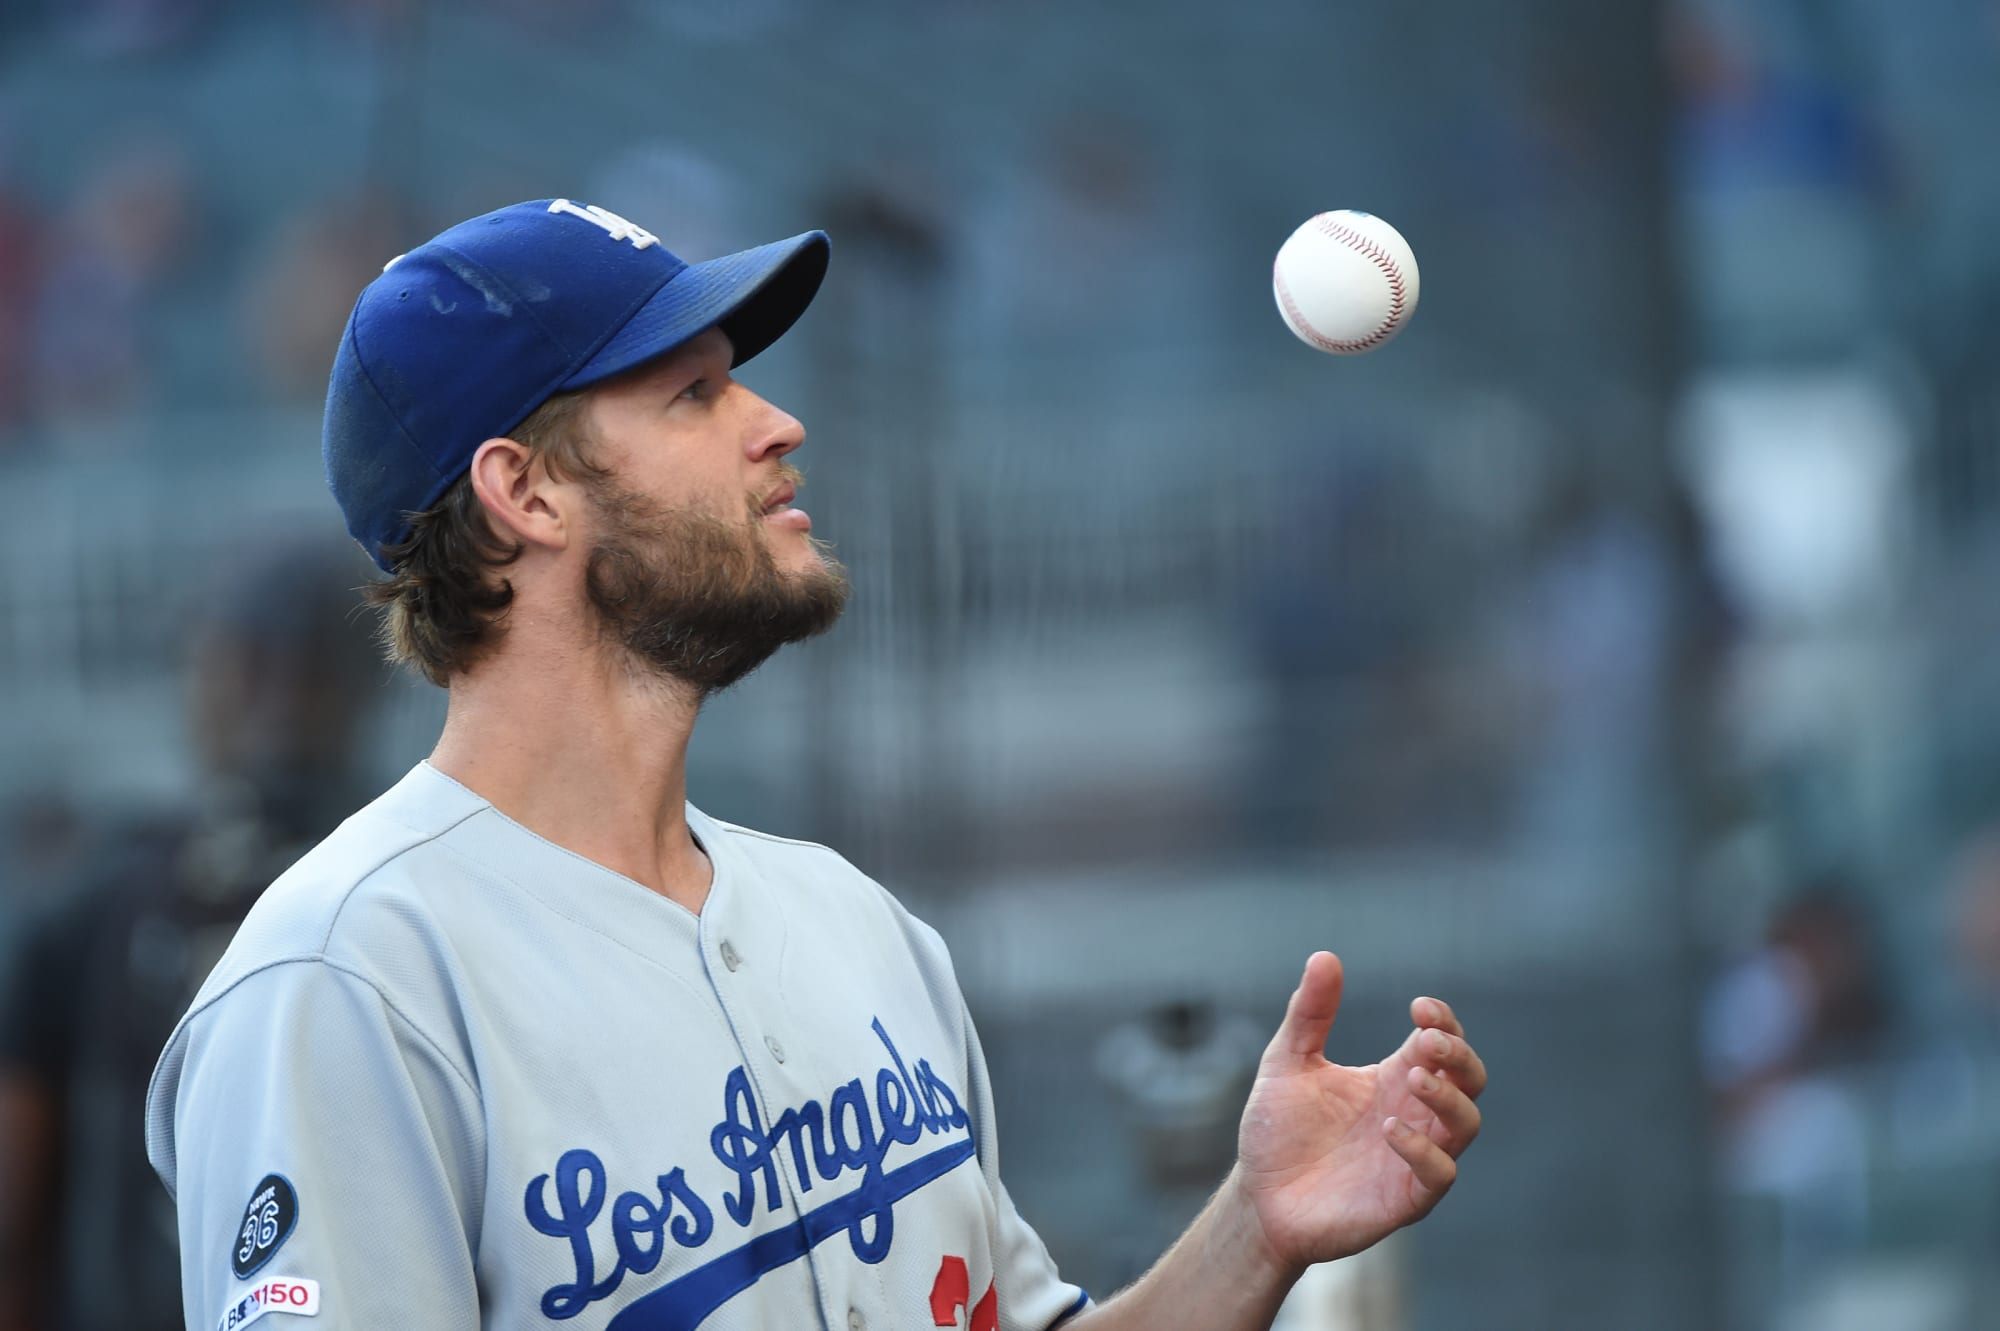 Photo of Dodgers shooting pitcher with a hilarious and ironic name